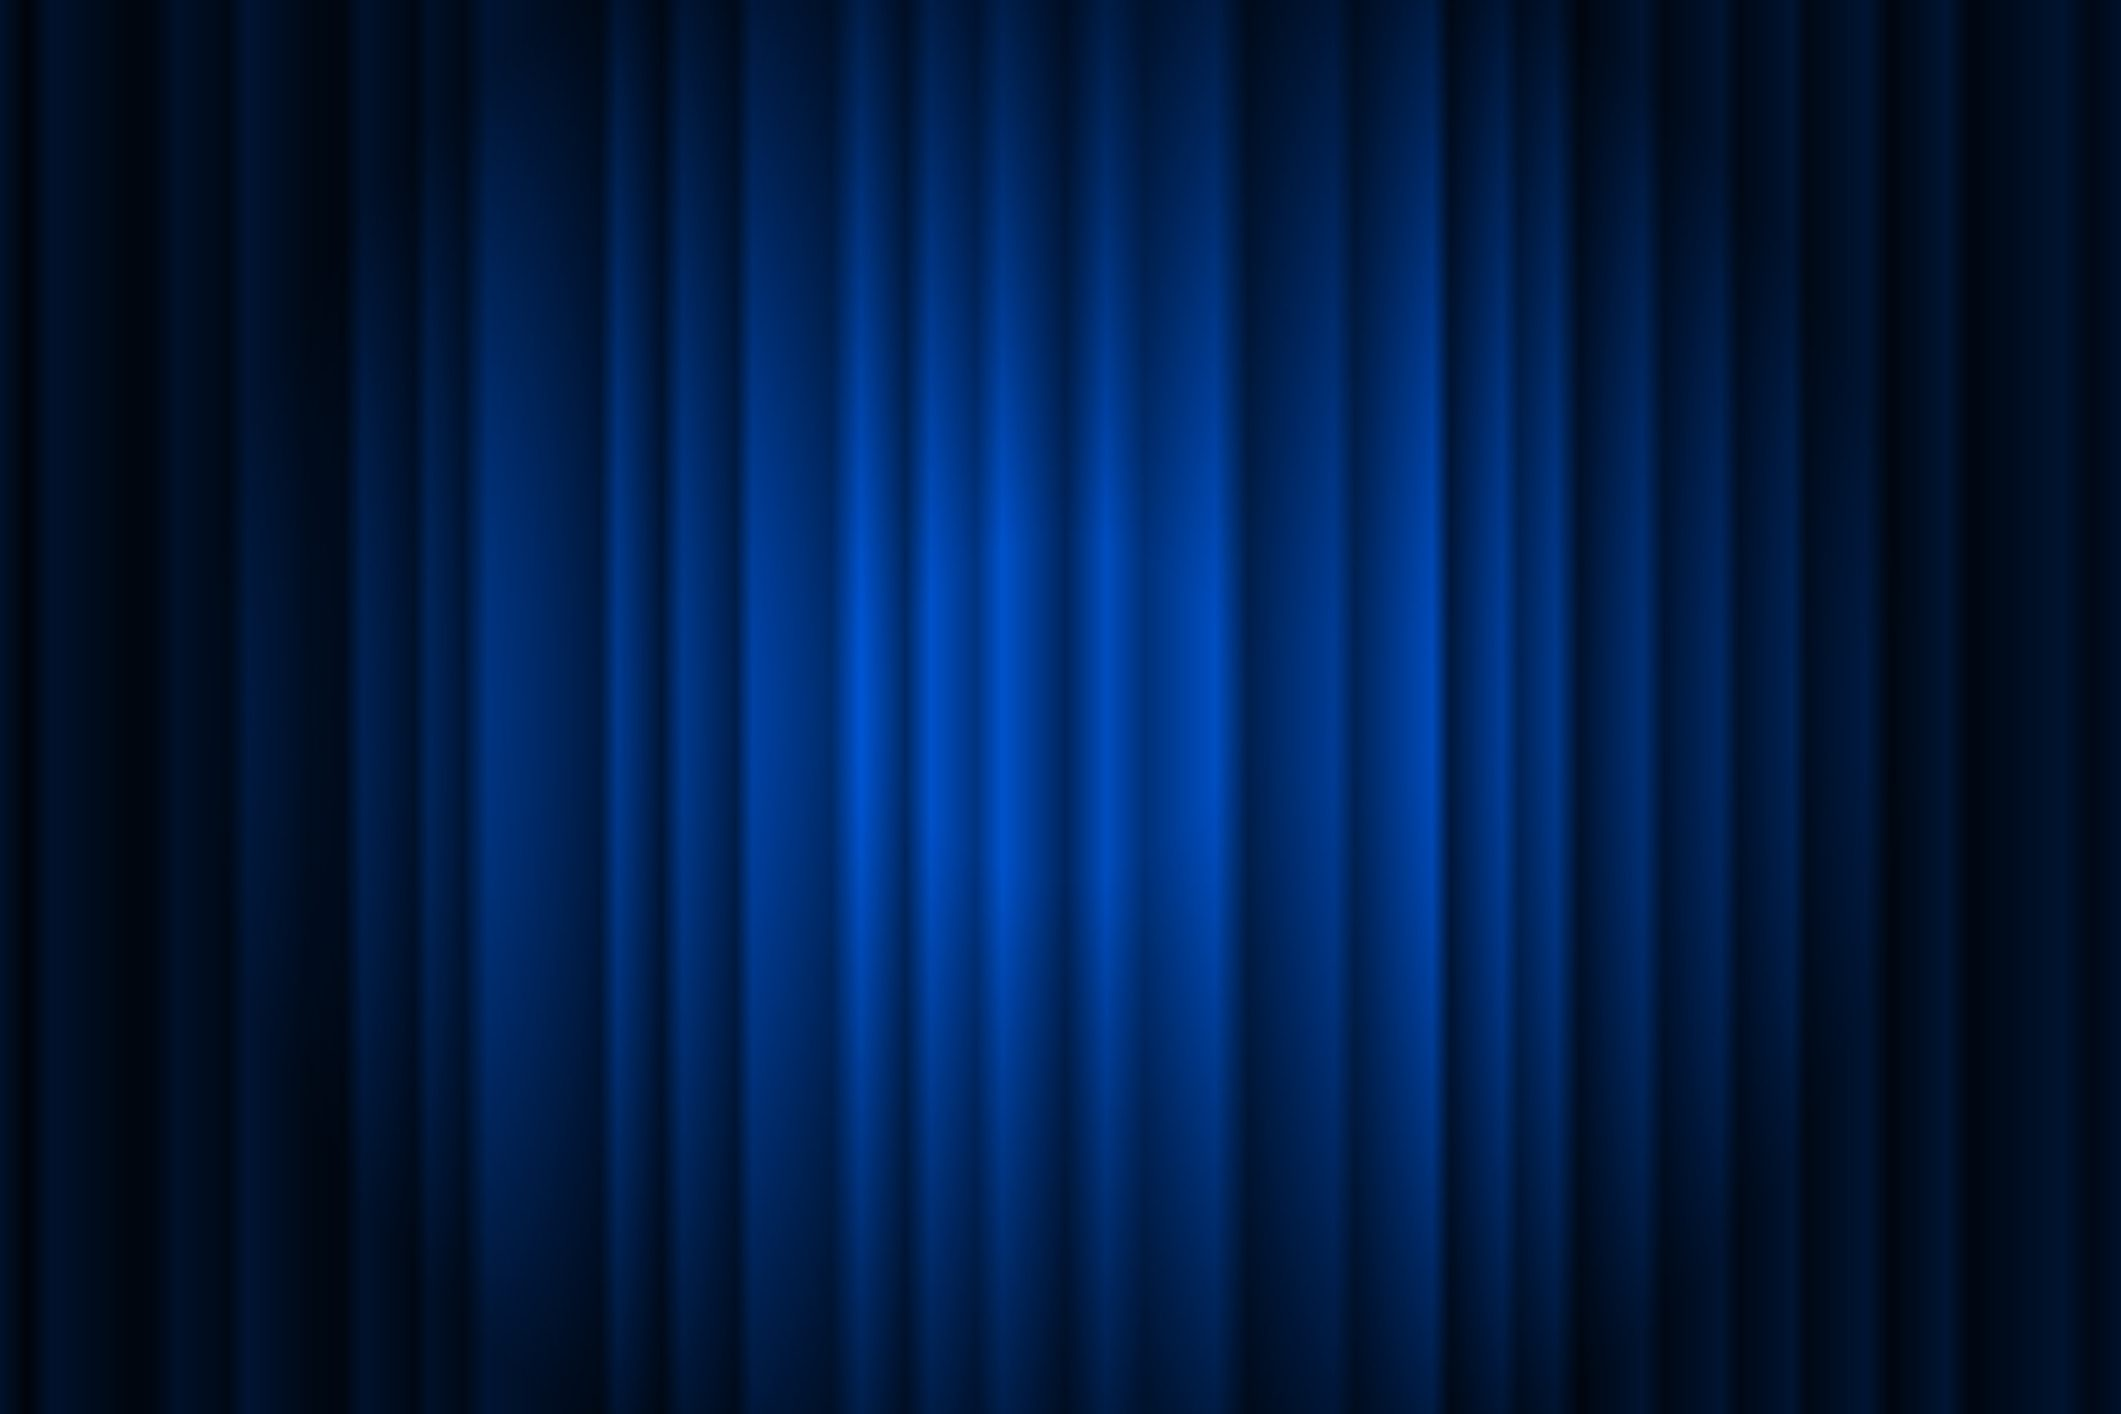 the addison at clermont Closed silky luxury blue curtain stage background spotlight beam illuminated. Theatrical drapes. Vector gradient illustration